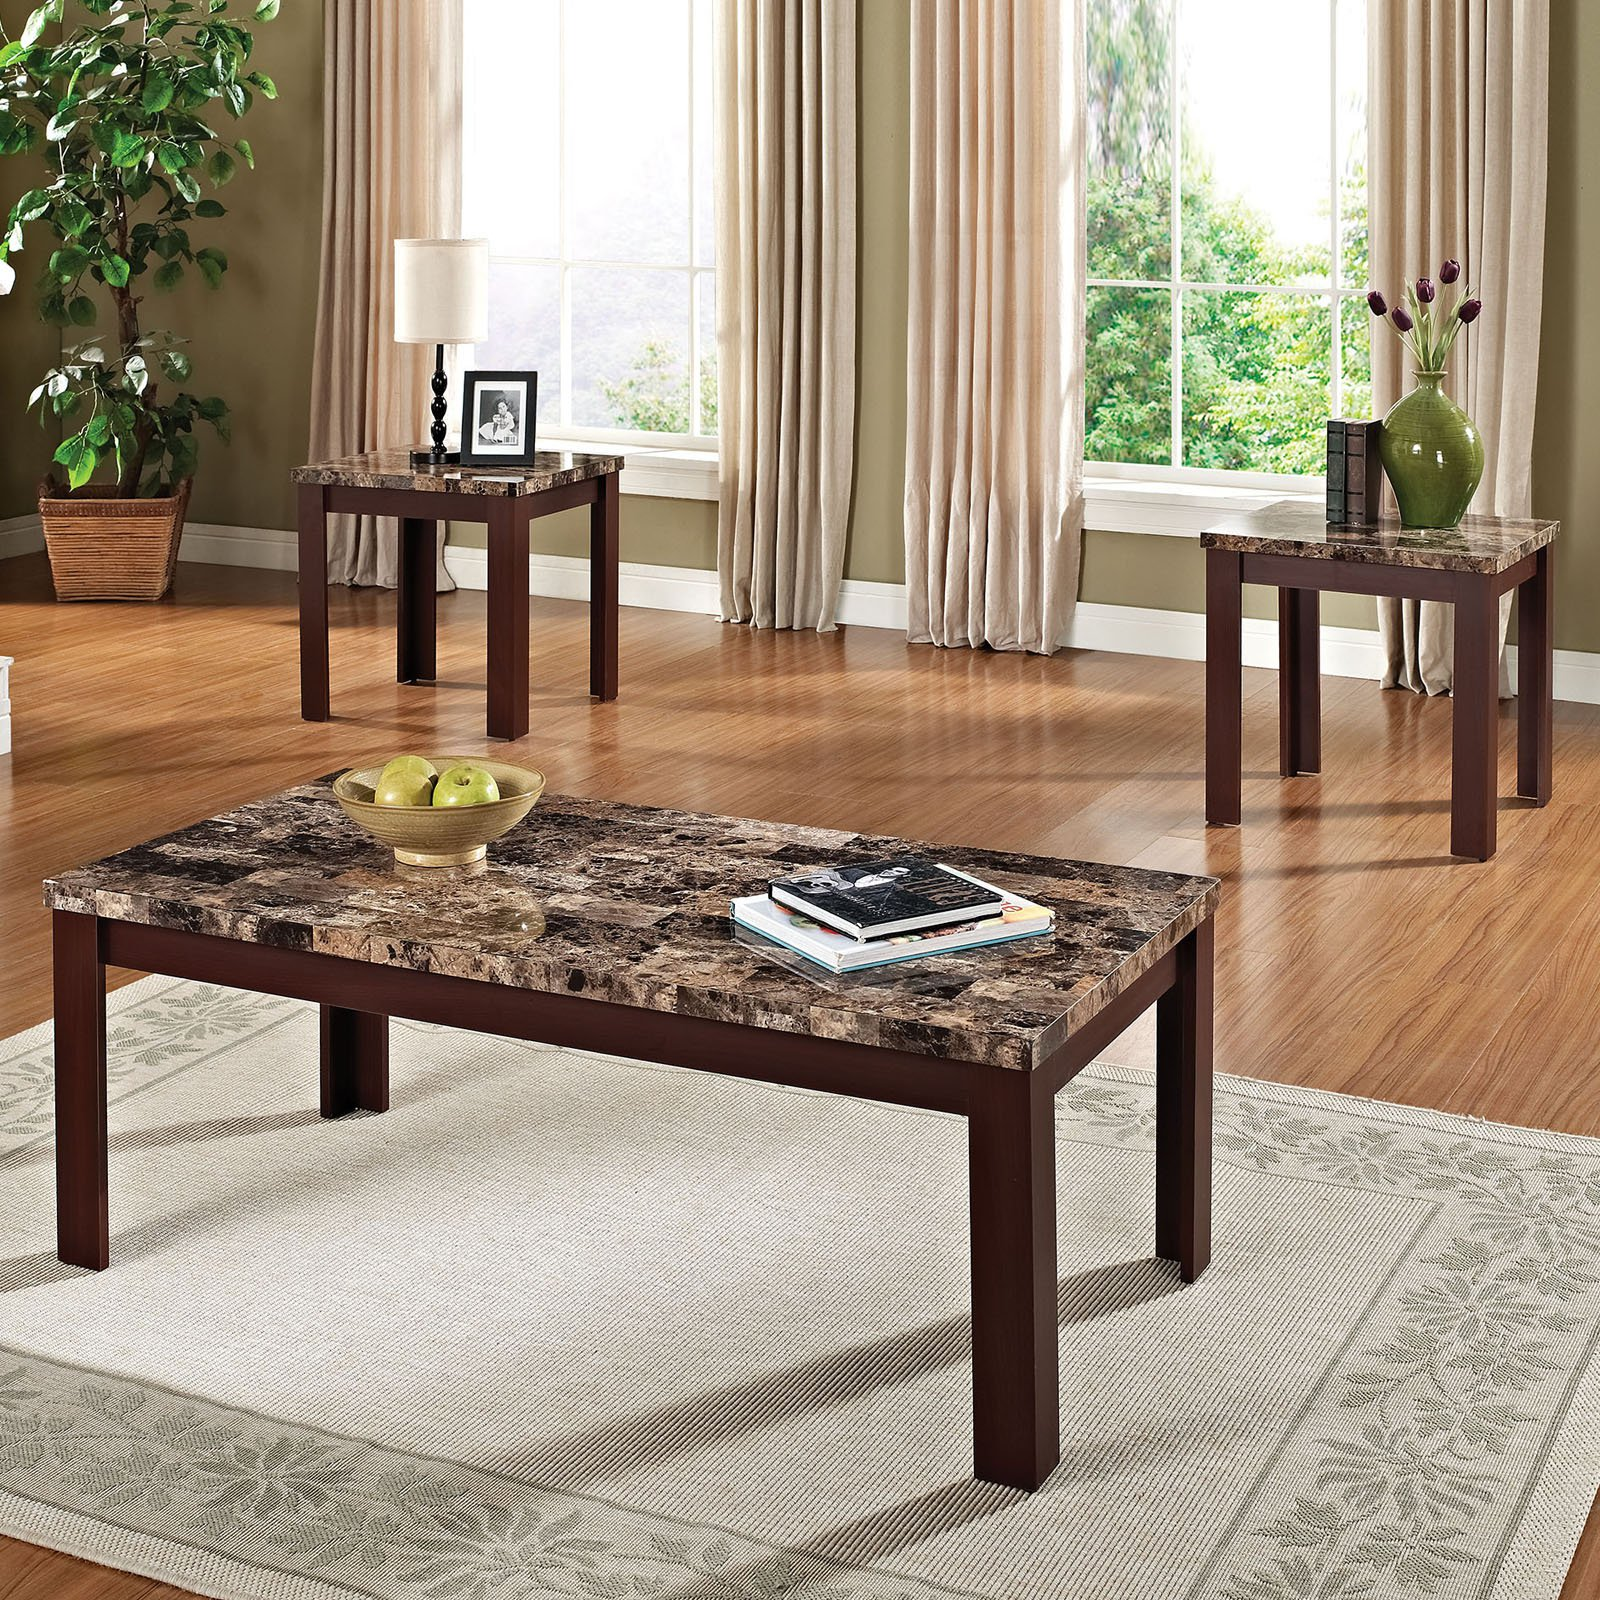 acme piece finely coffee and end table set dark brown faux marble accent black grey dining room chairs runner placemats battery run lamps white console old wood tables cream